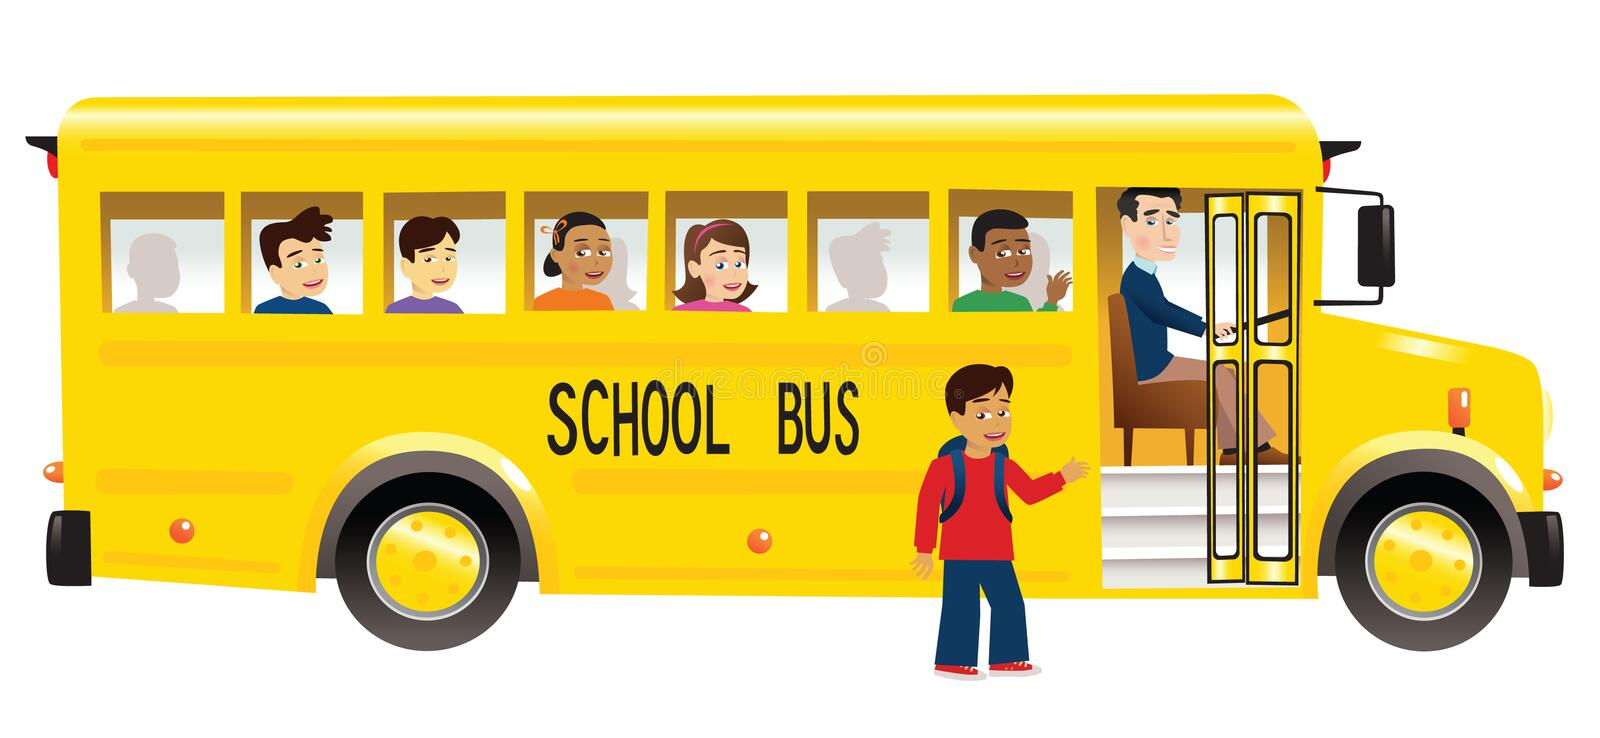 School bus and children royalty free stock images